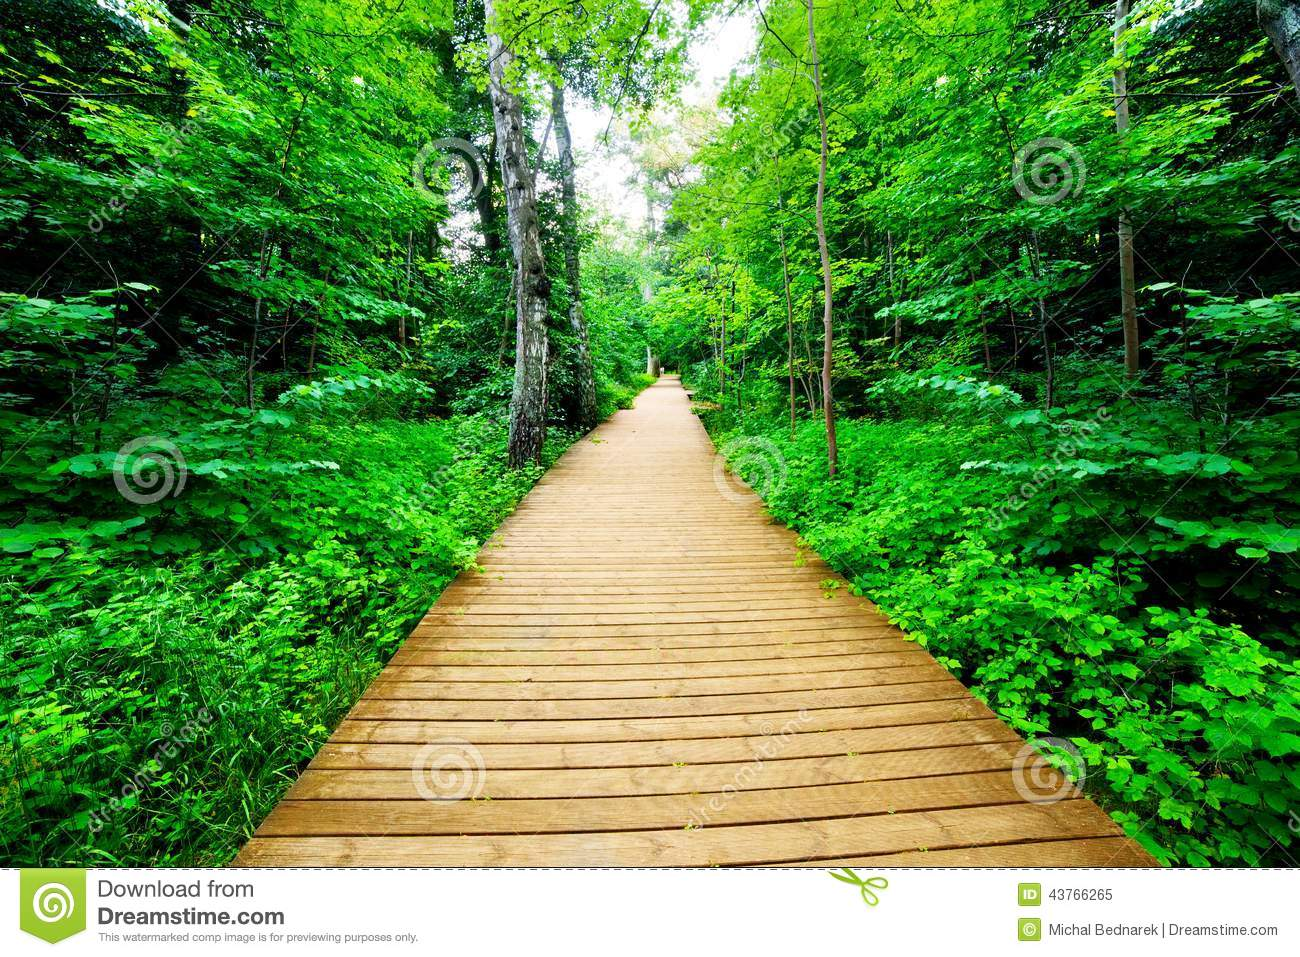 Forest In 3d Landscape Wallpaper Wooden Way In Green Forest Lush Bush Stock Photo Image